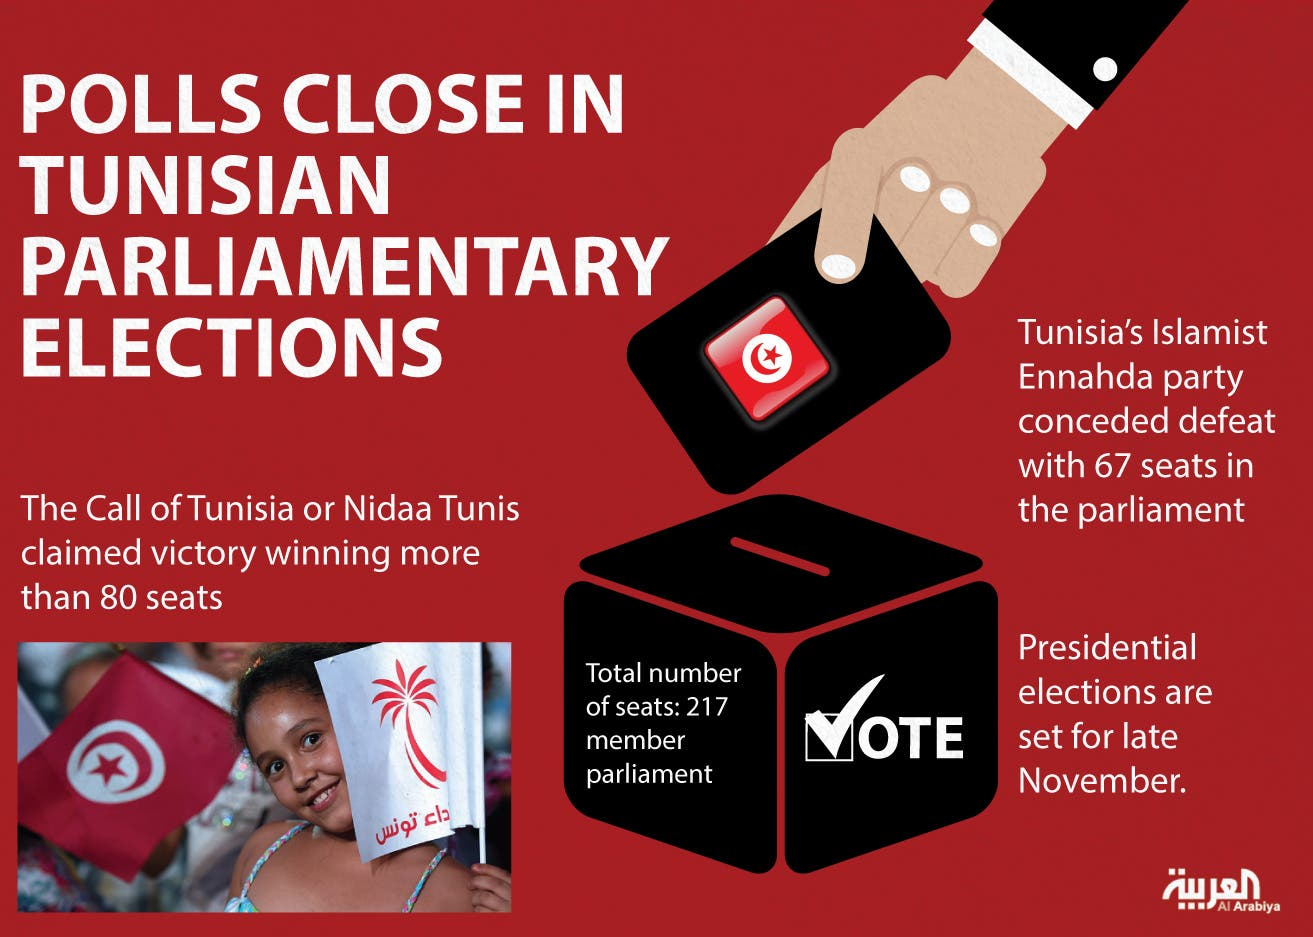 Infographic: Polls close in Tunisian parliamentary elections